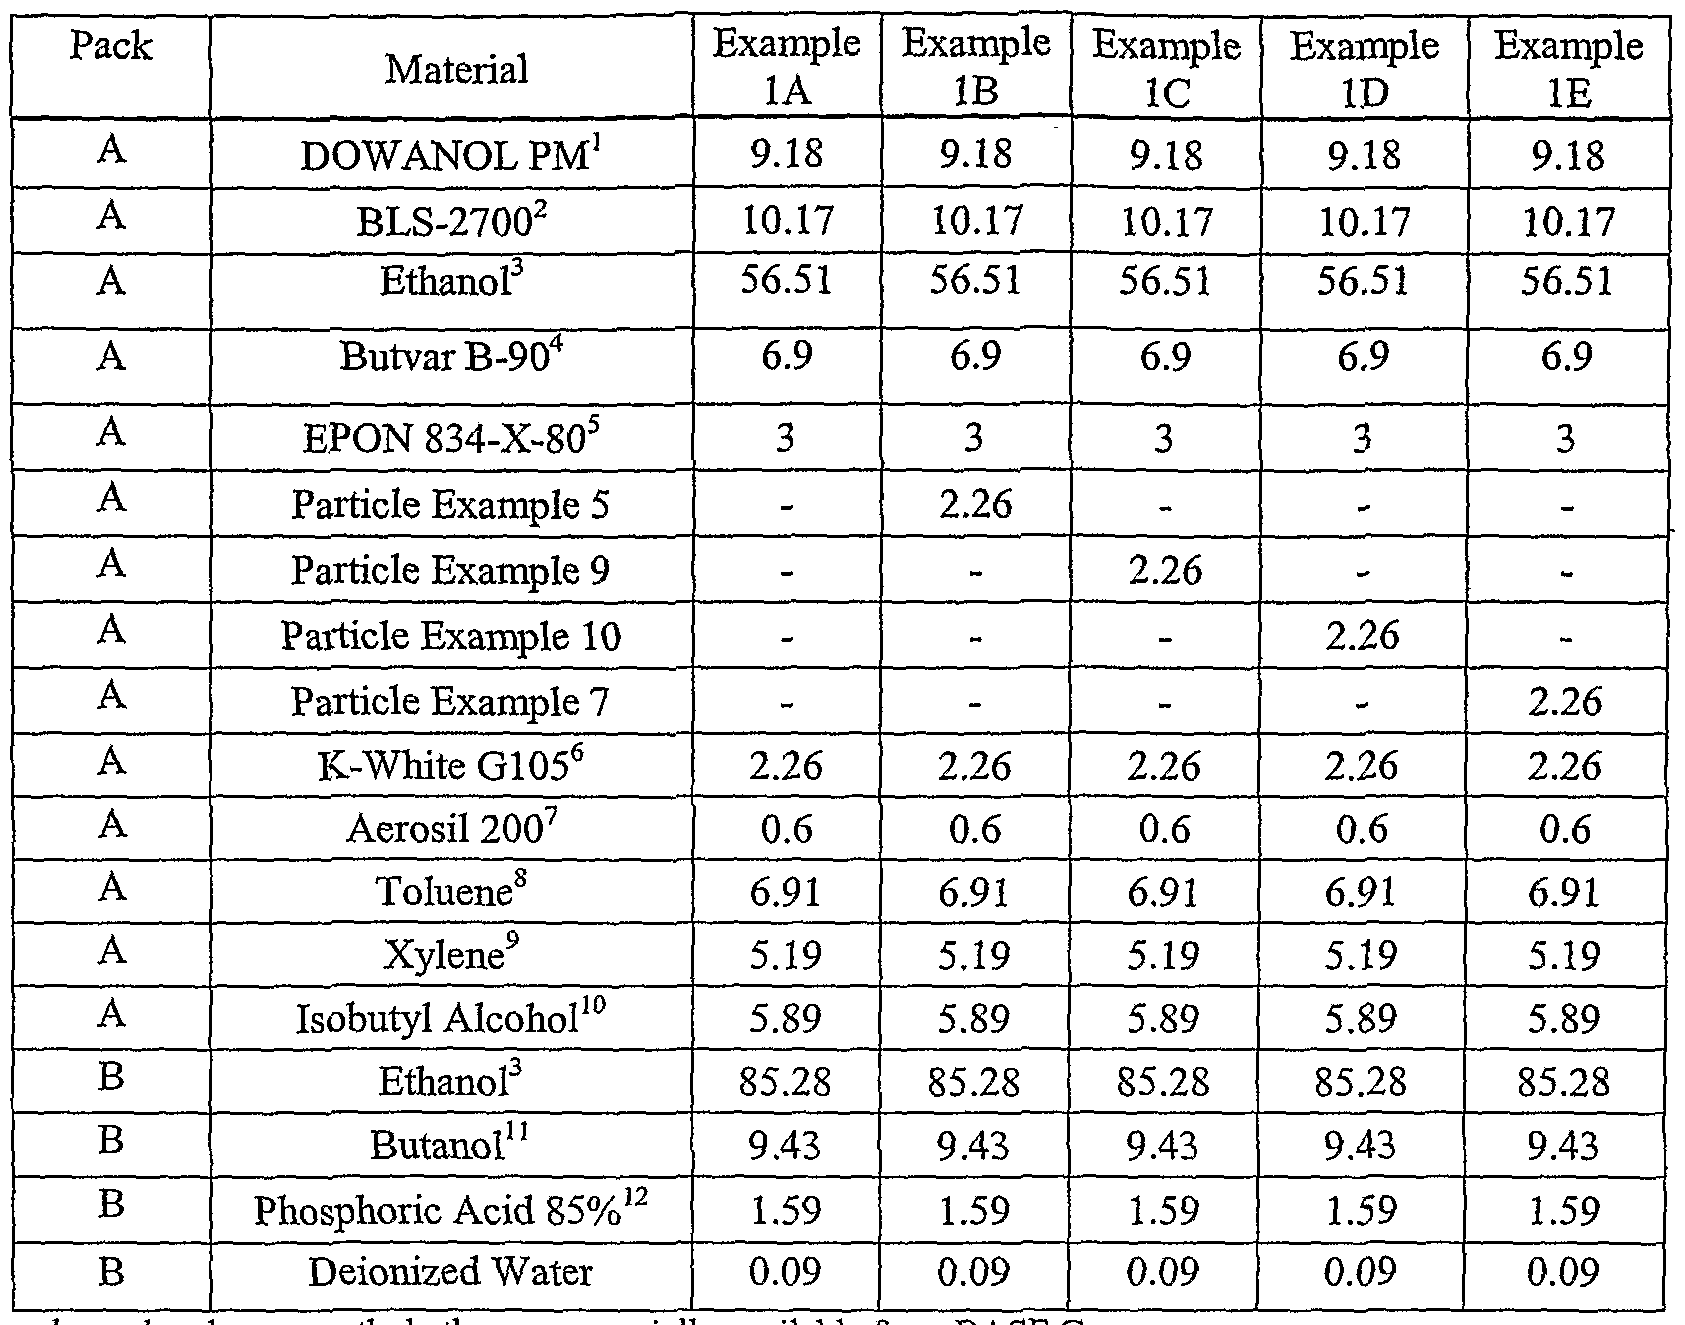 WO2007025297A2 - Coating compositions exhibiting corrosion